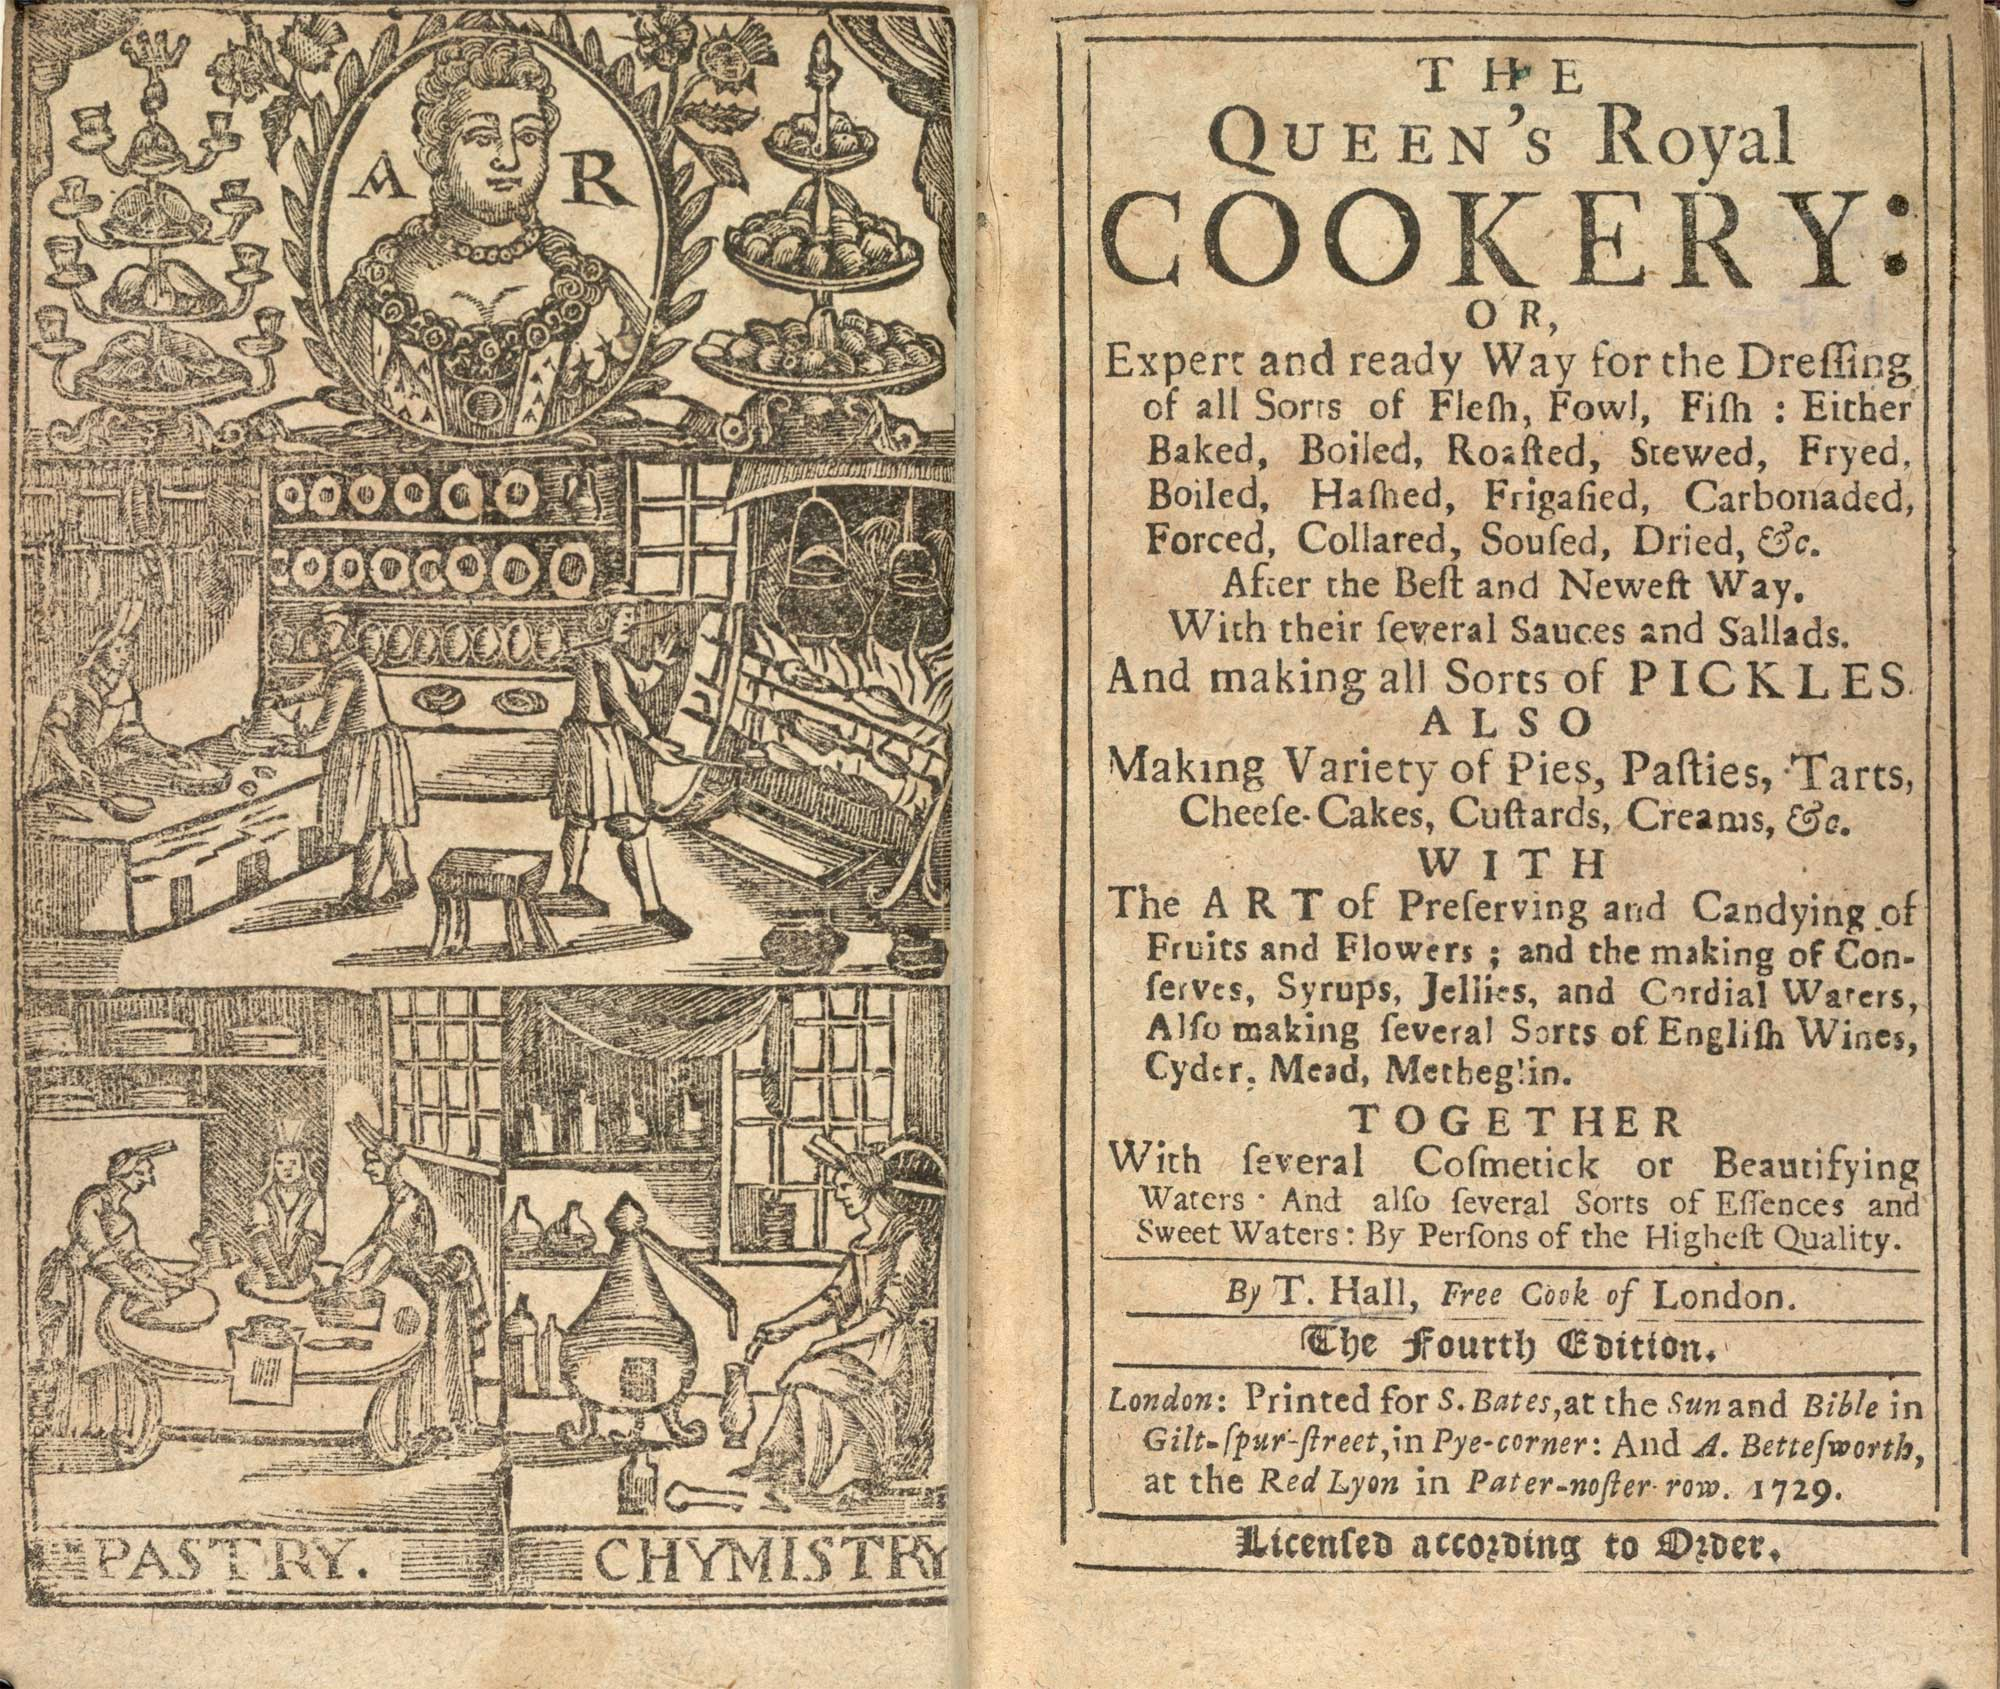 Queen's Royal Cookery